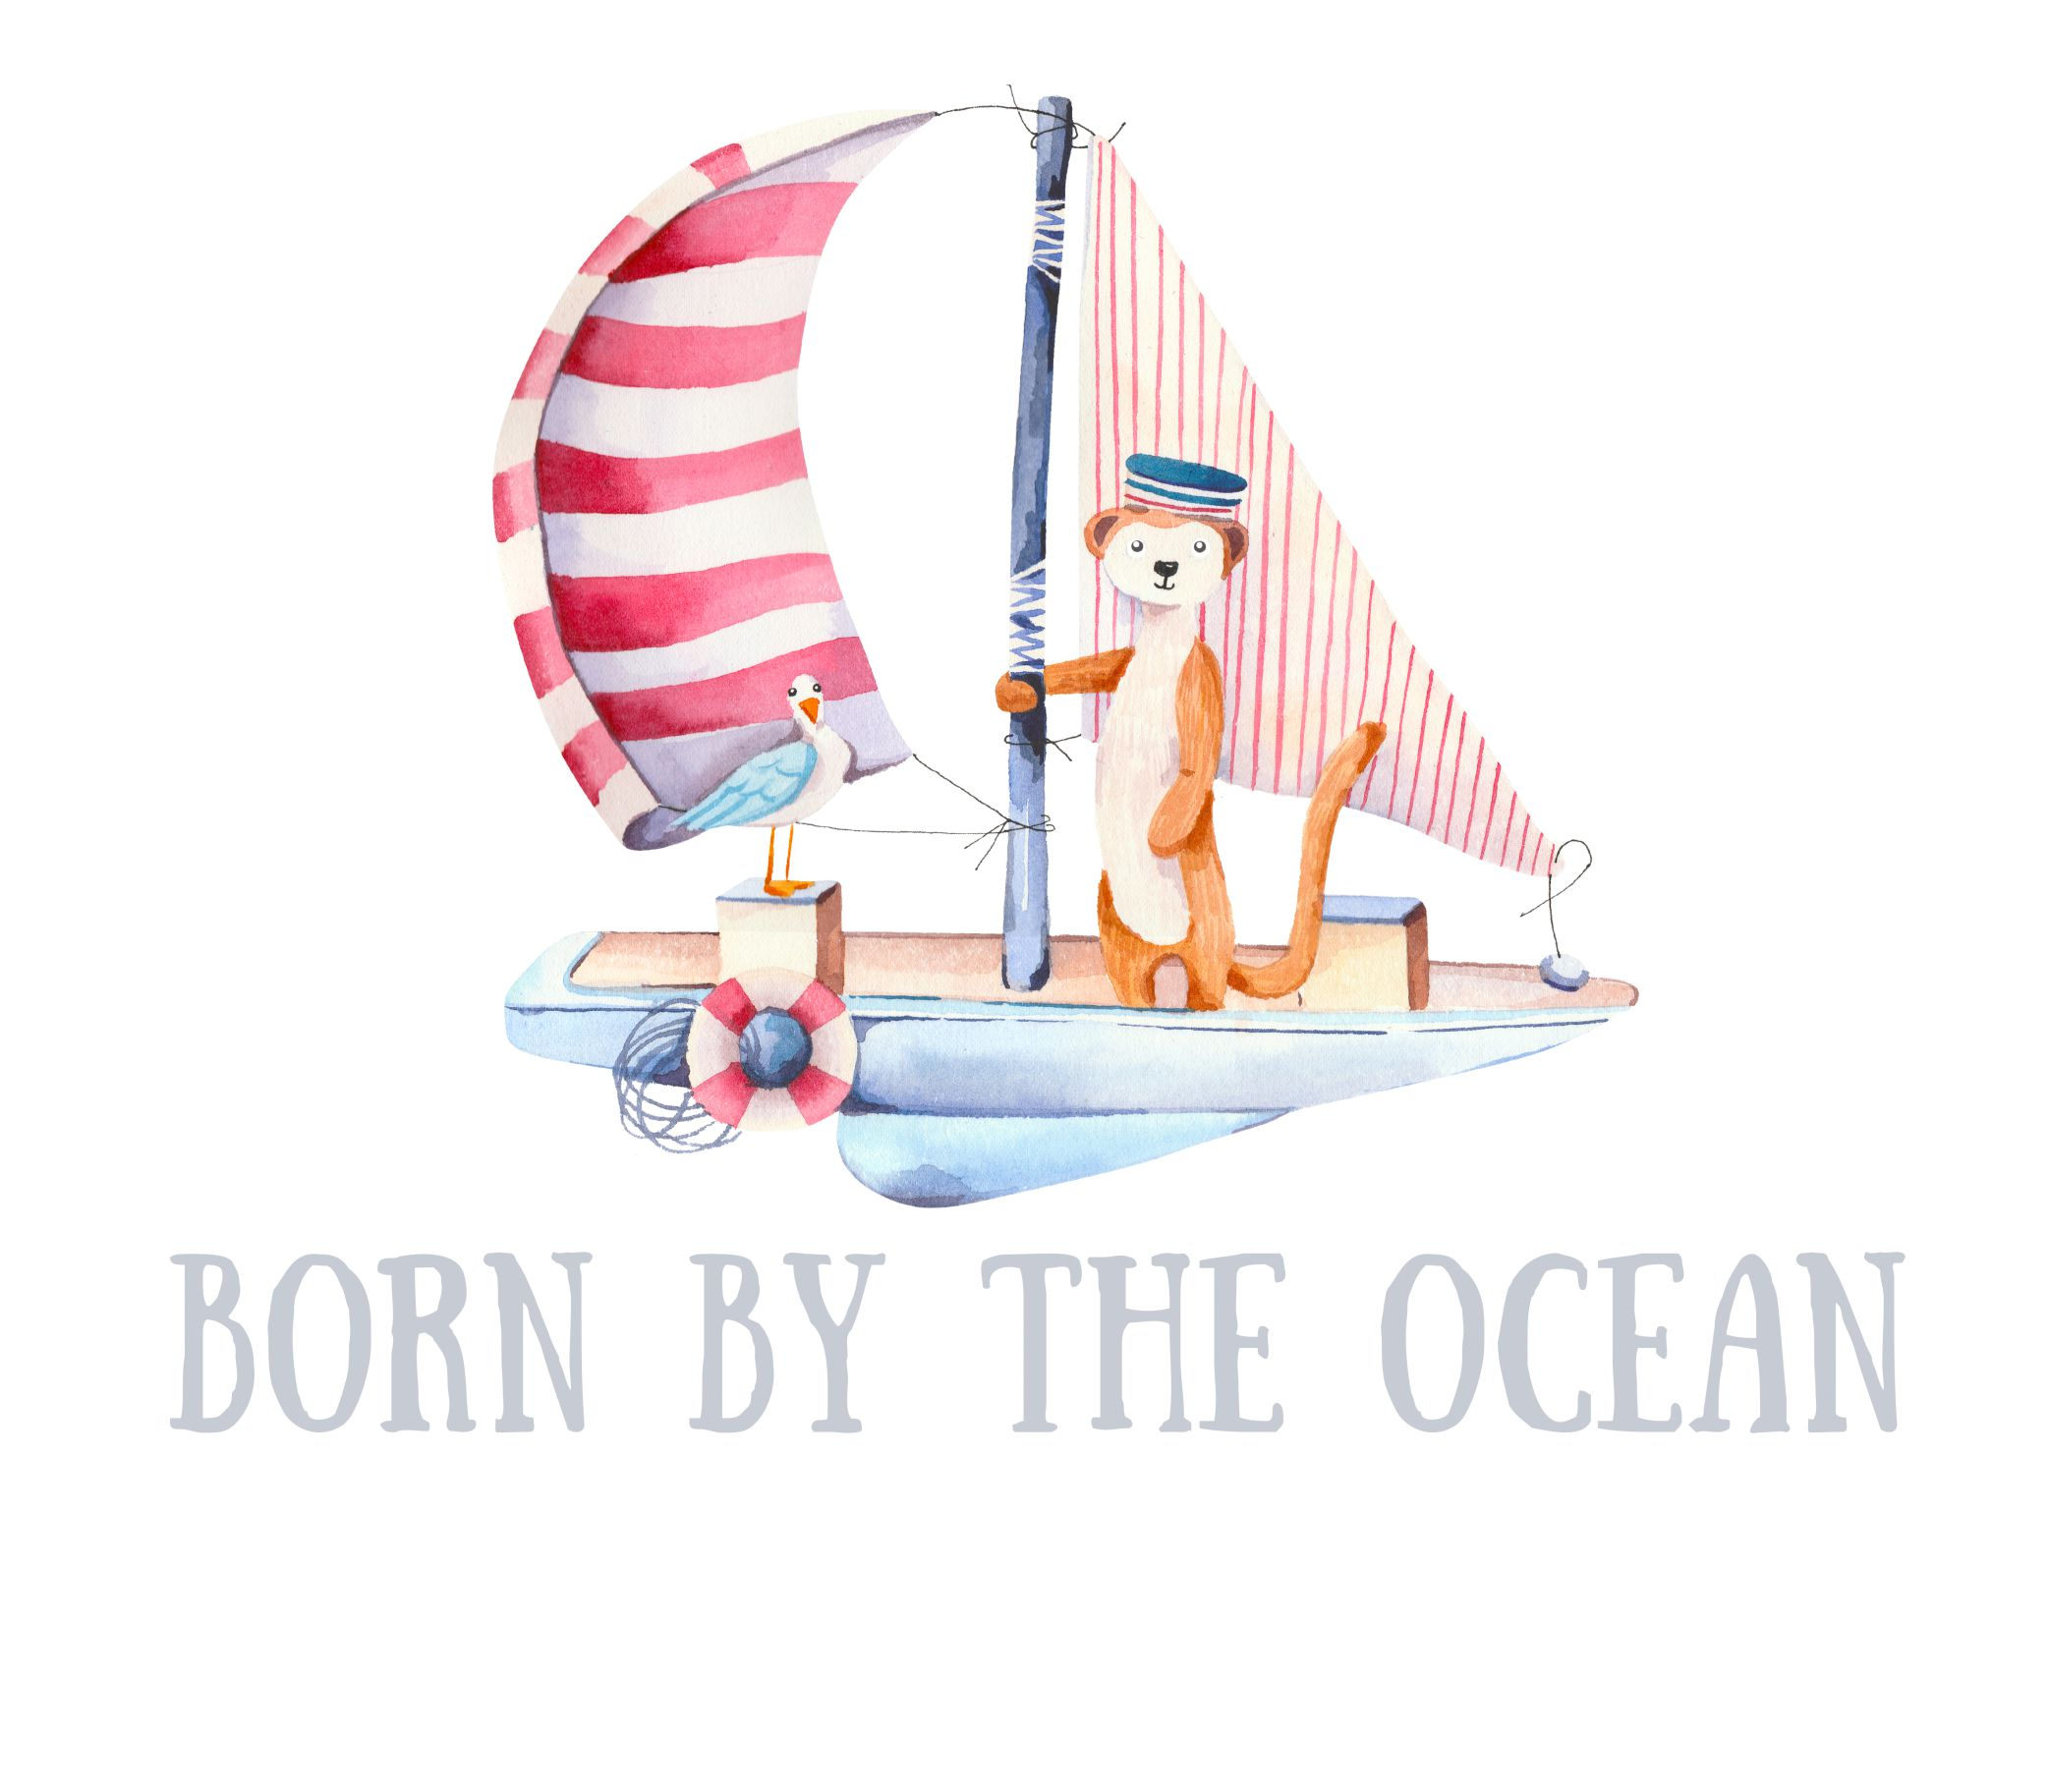 BORN BY THE OCEAN